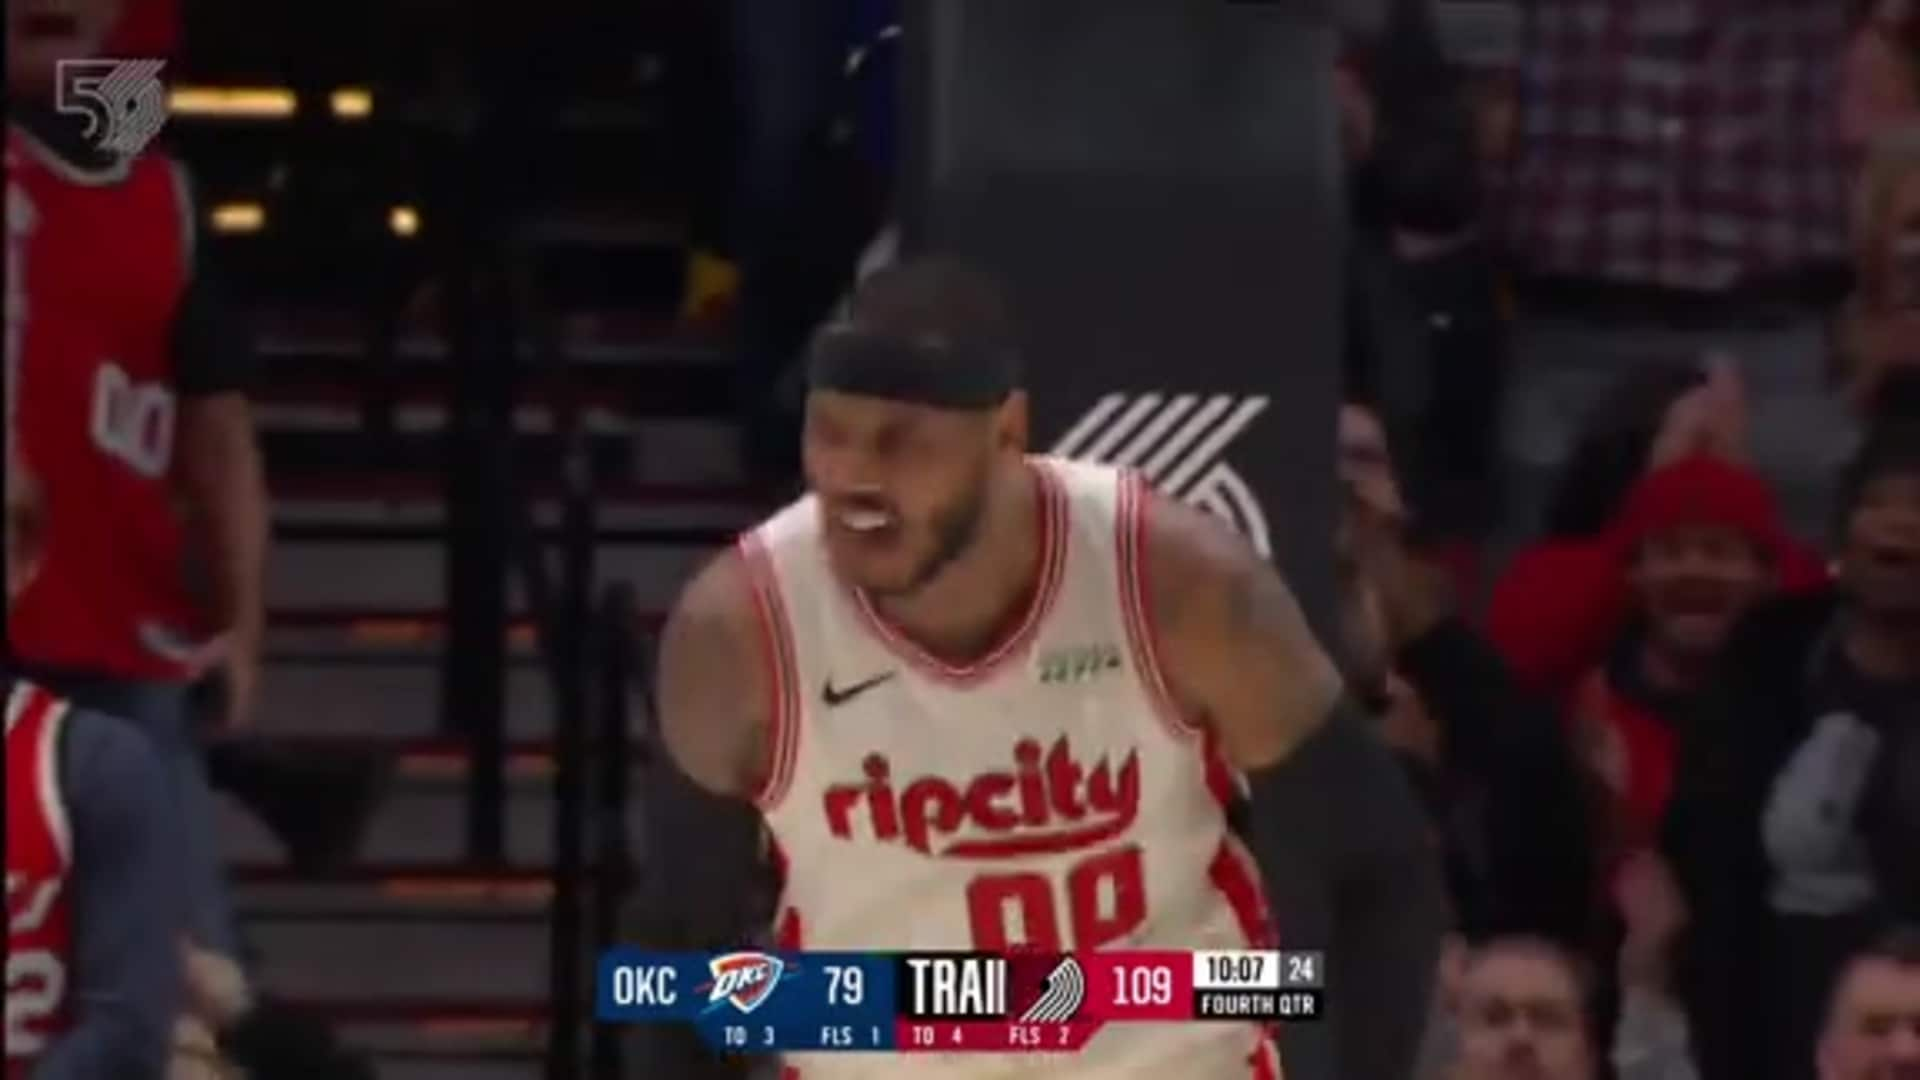 Carmelo Anthony drives baseline and dunks, Moda Center erupts